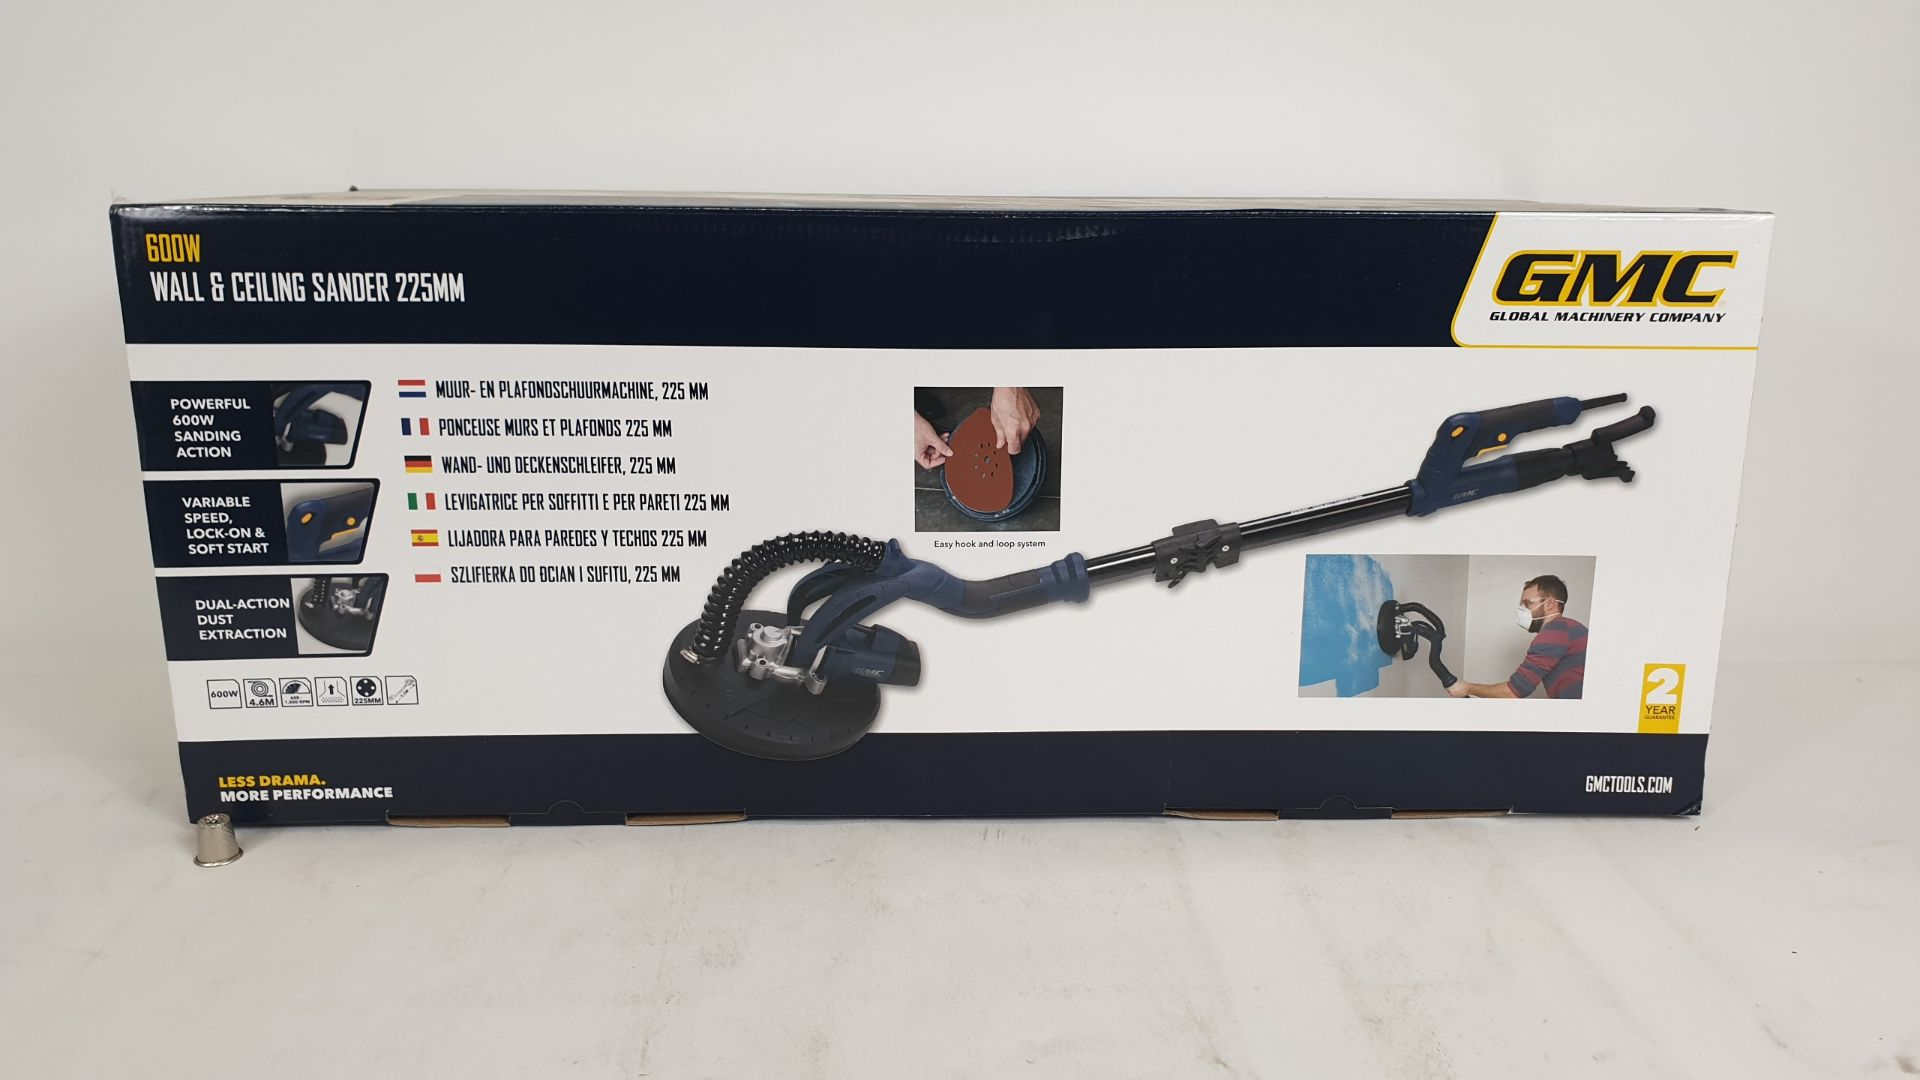 Lot 1561 - (LOT FOR THURSDAY 28TH MAY AUCTION) GMC 600W WALL AND CEILING SANDER 225M (PRODUCT CODE 264803) - (